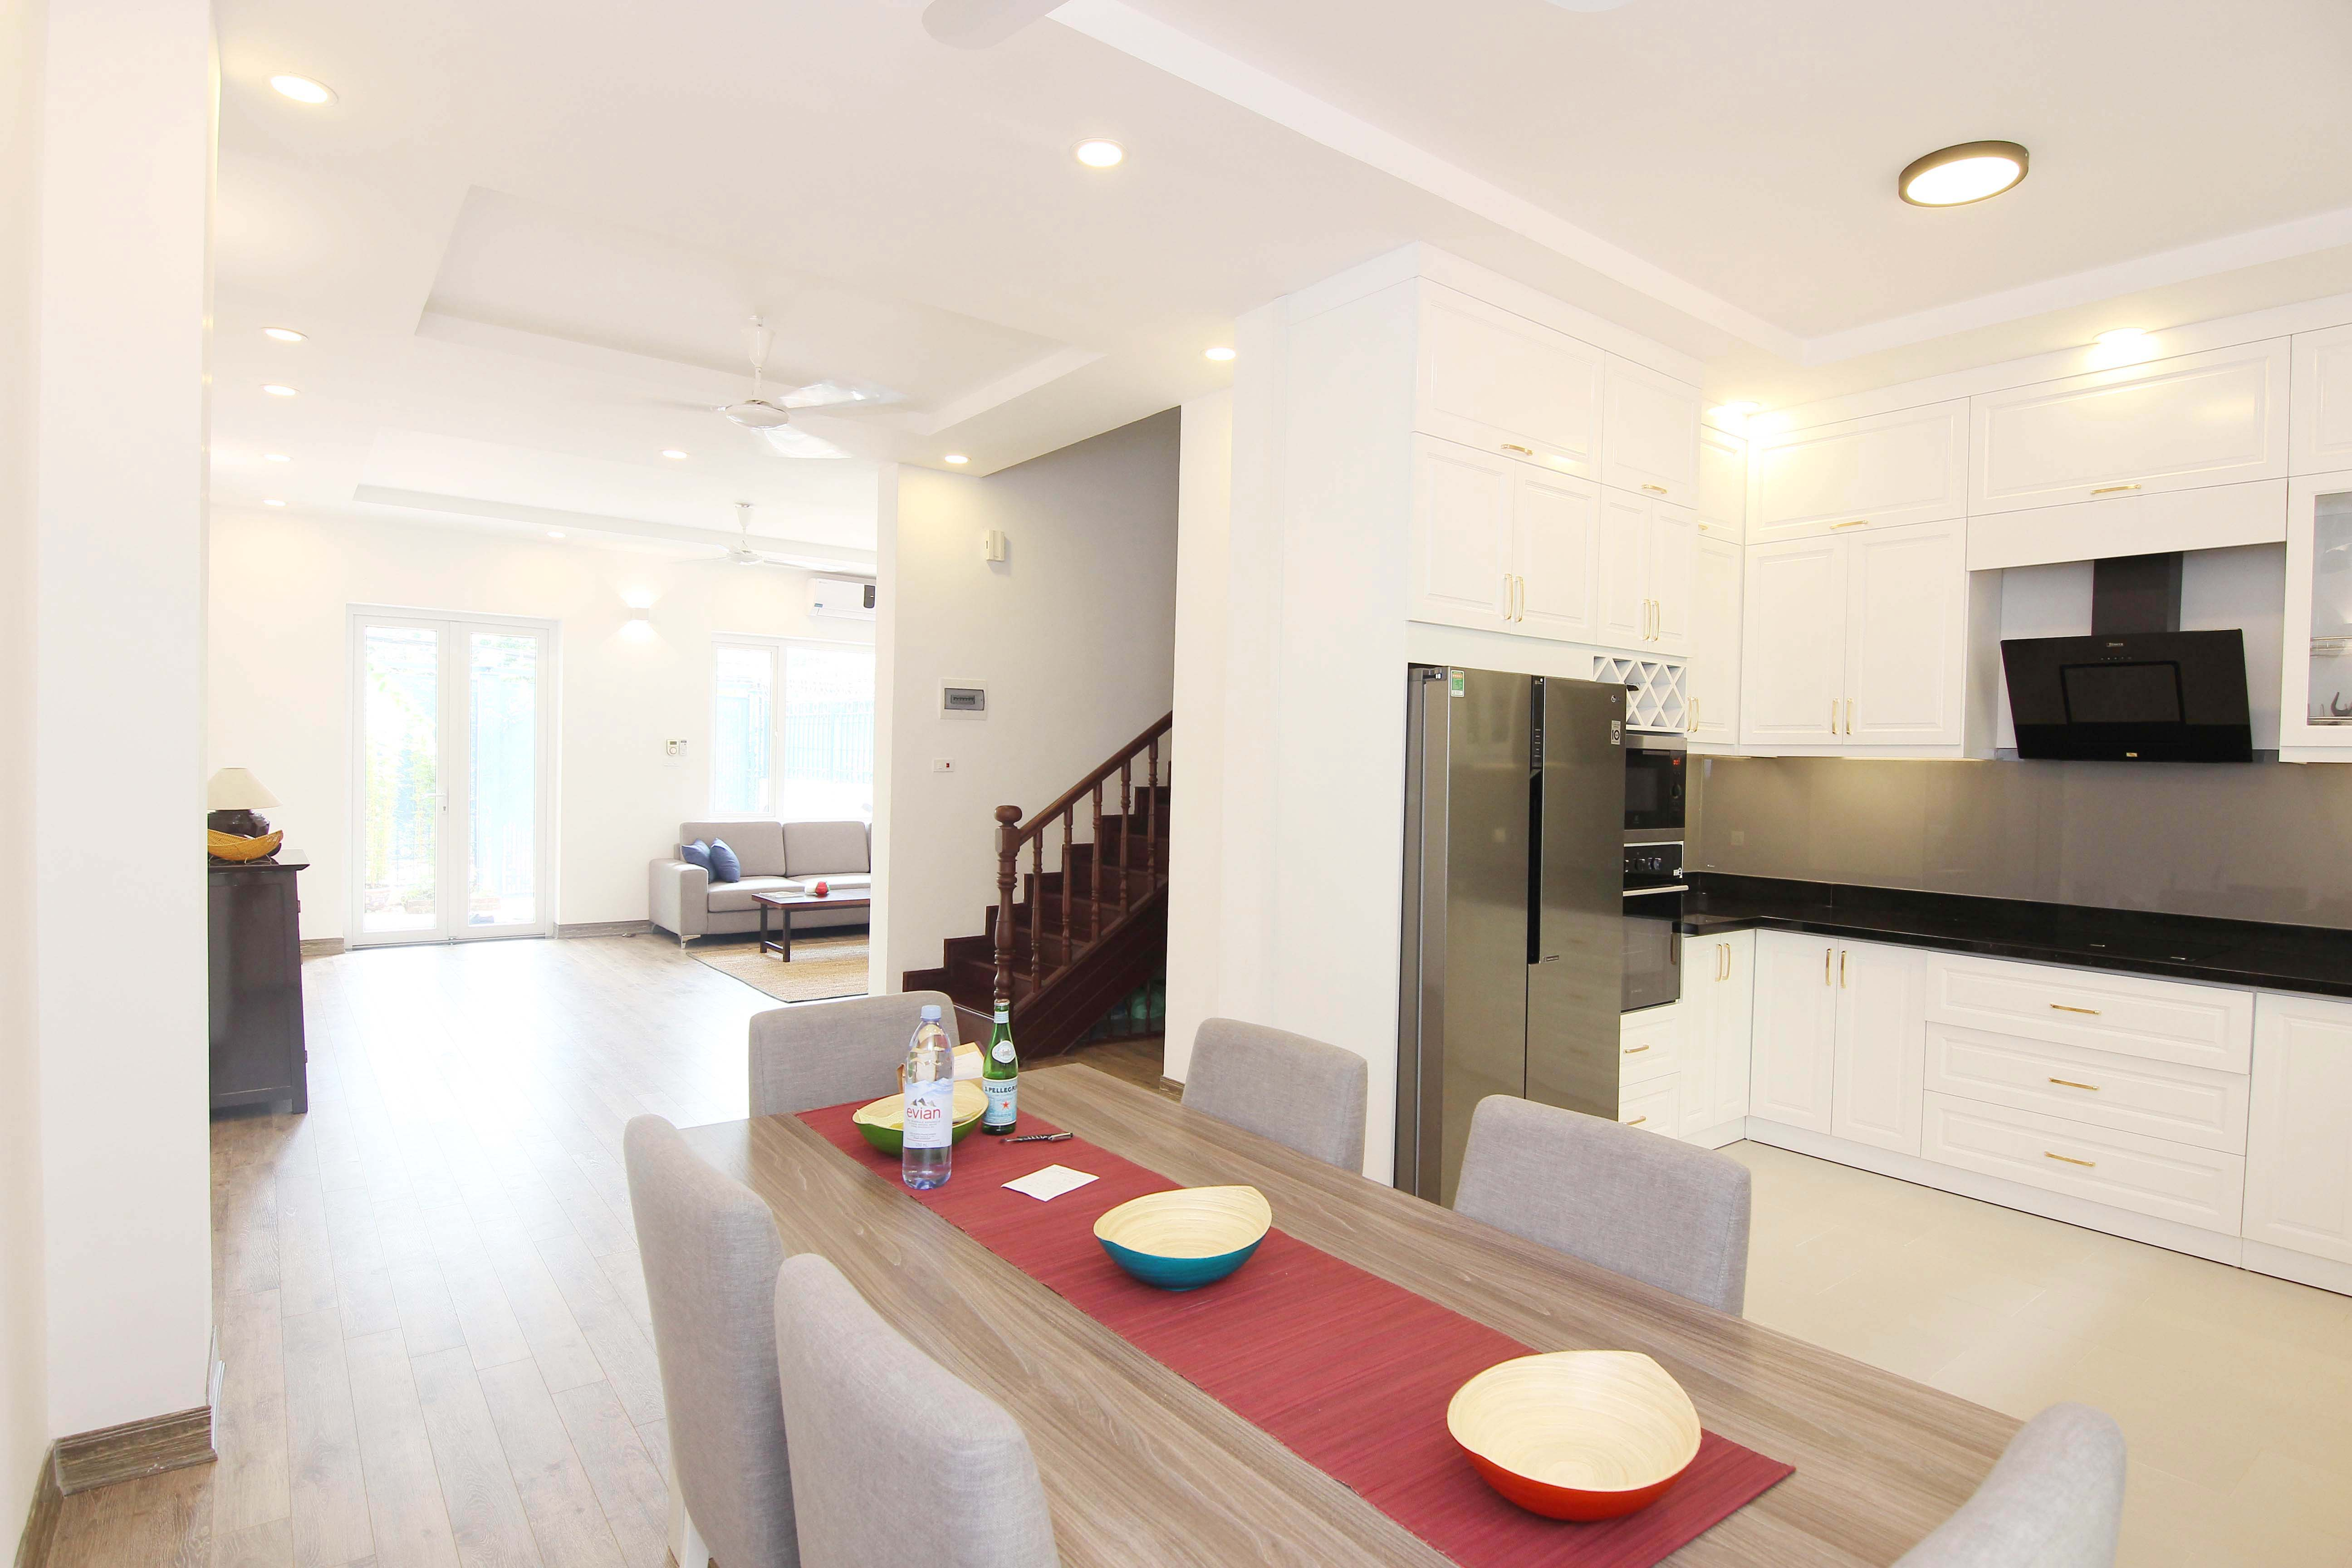 A lovely villa with 5 bedroom for rent on Xom Chua street, Tay Ho district 3